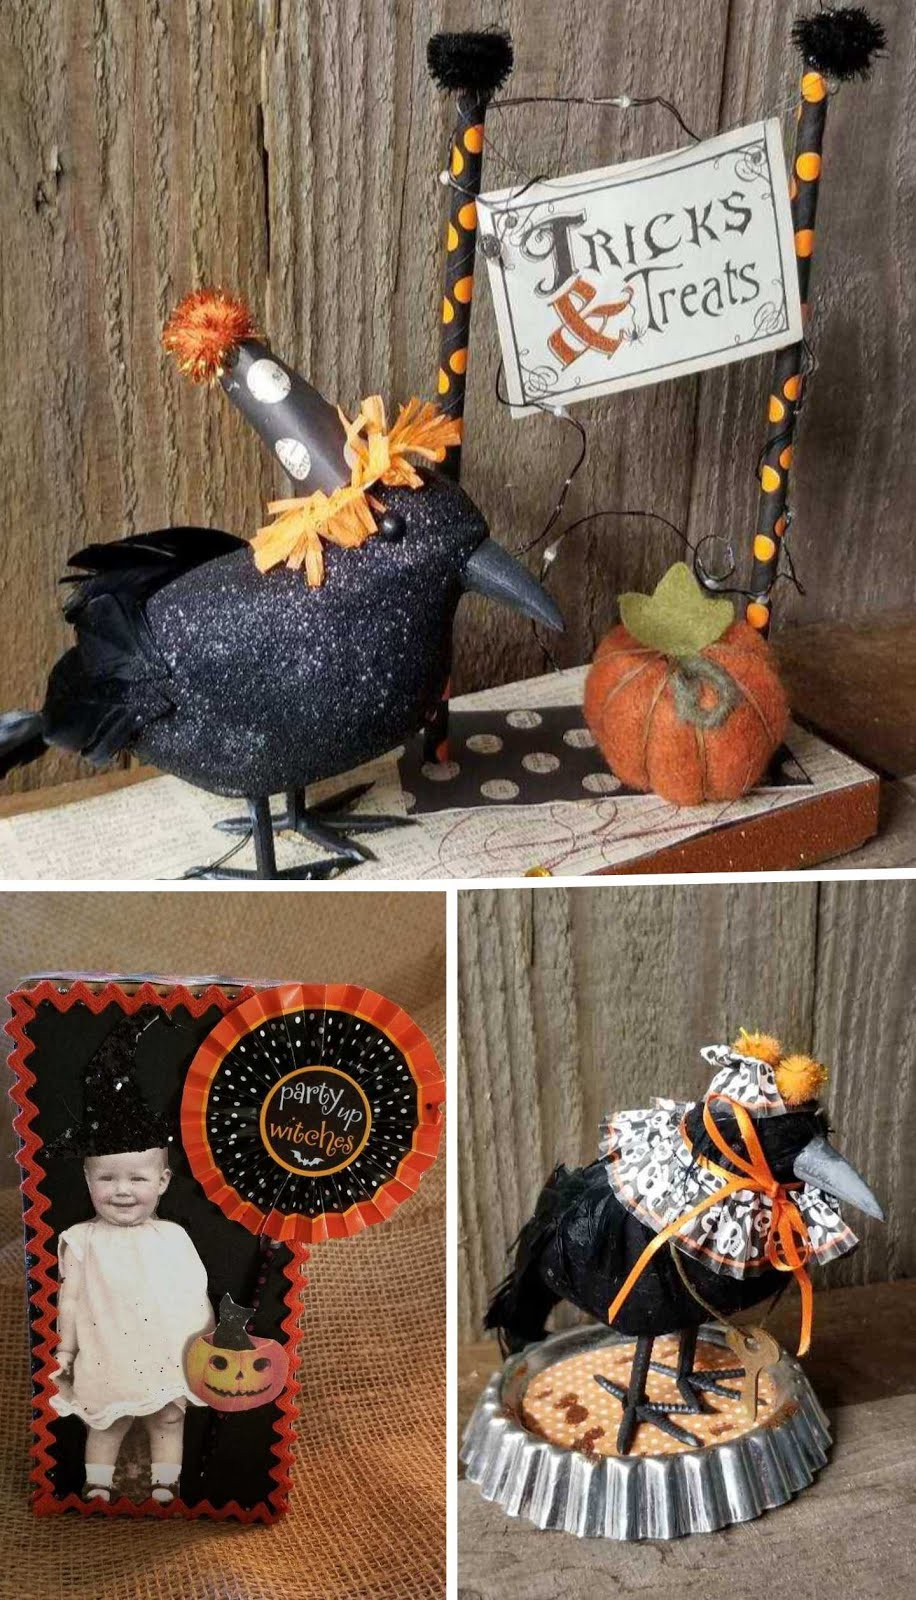 GIRLS NIGHT OUT - FESTIVE CROWS